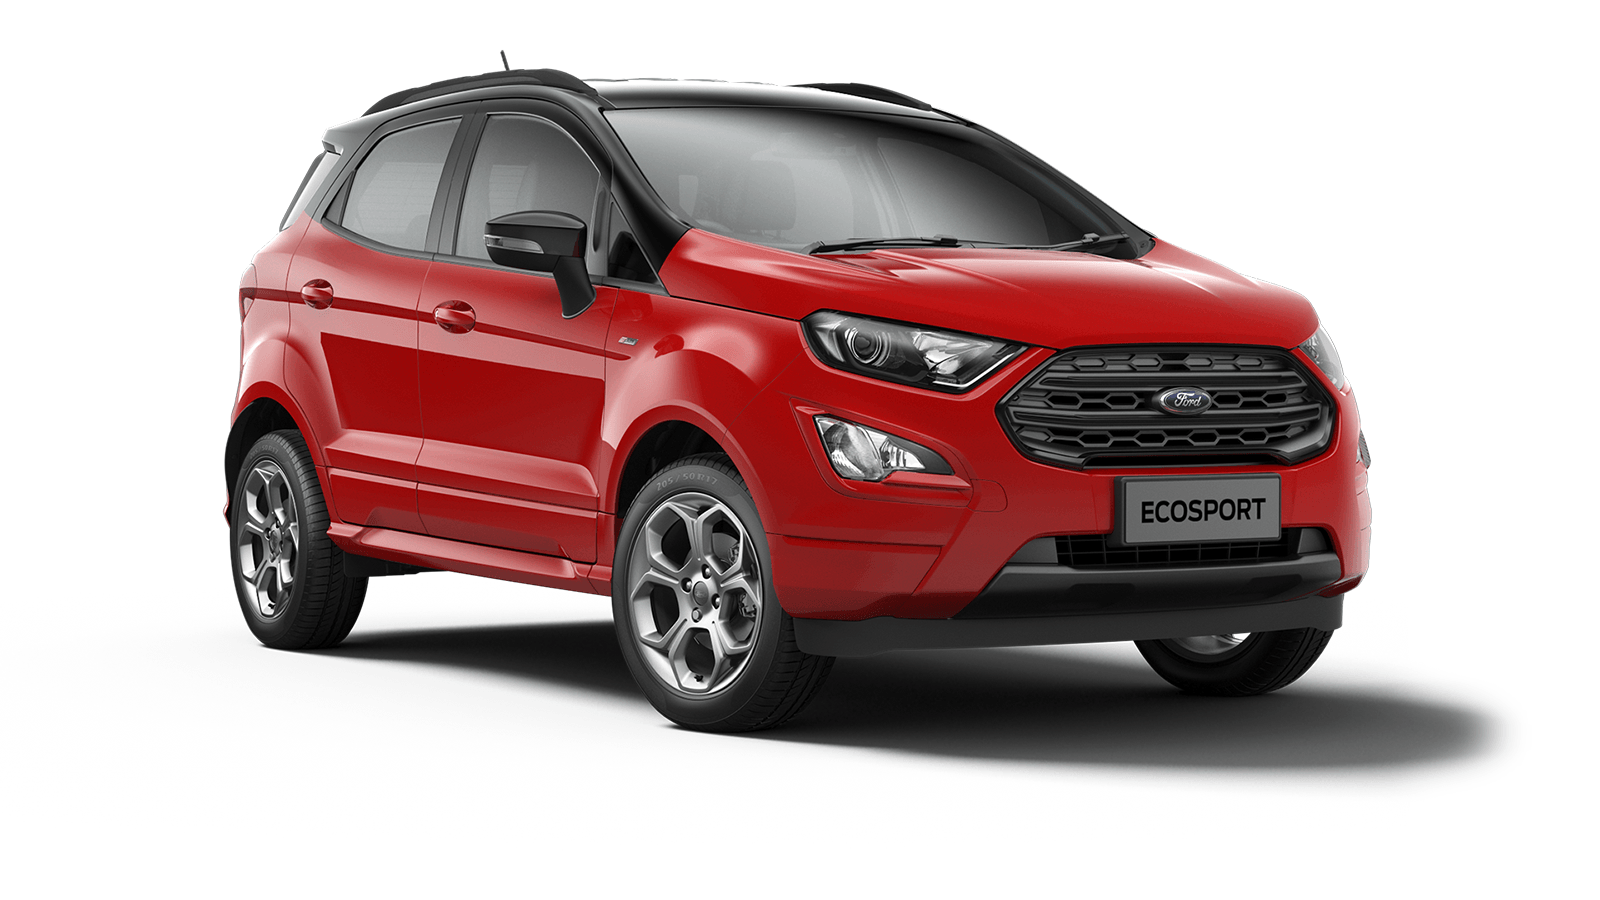 ECOSPORT ST-Line 5 Door in Race Red